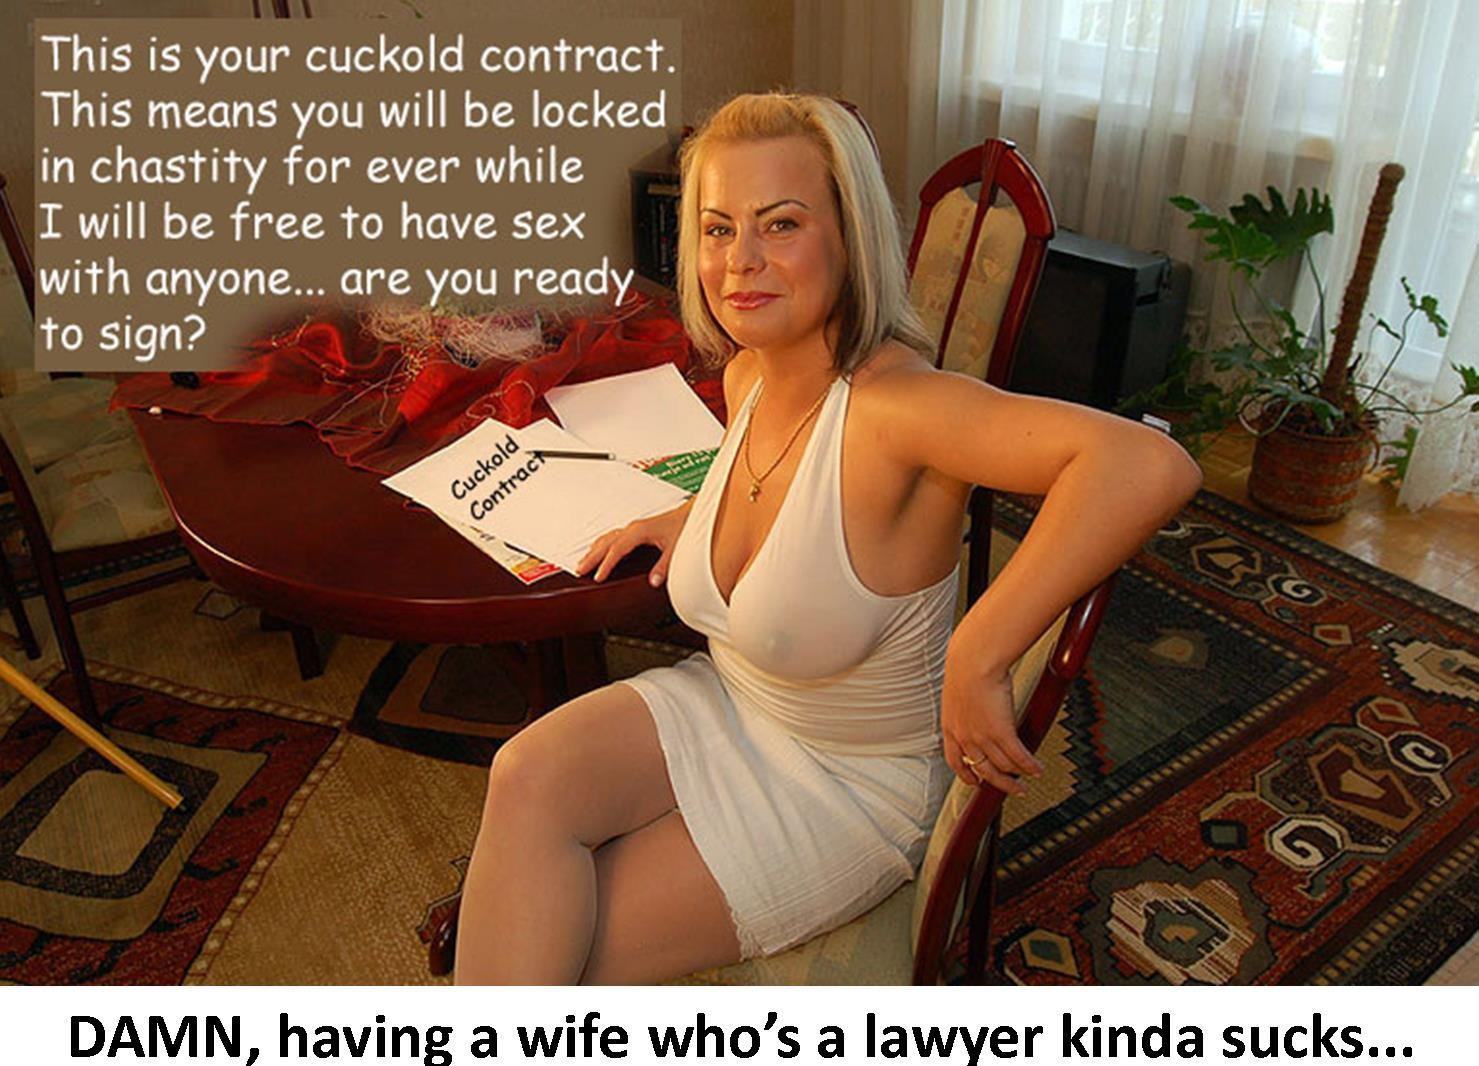 Cuckold contract